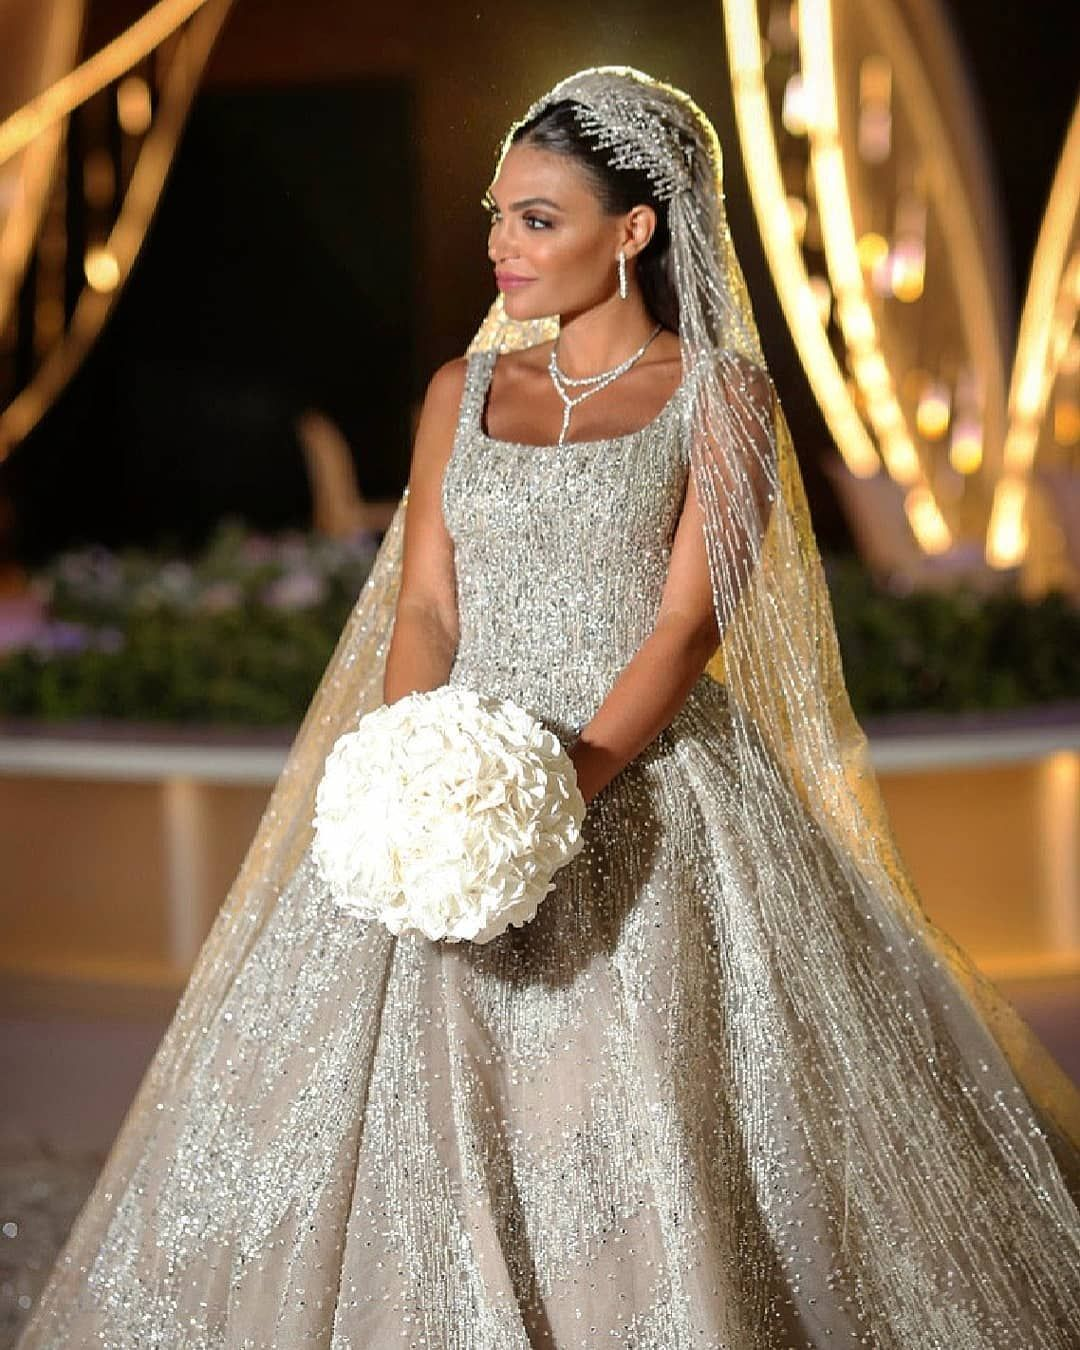 Lebanese Weddings On Instagram Wedding Dress Dreams Do Come True Catch More Of Her Magical N Wedding Dresses Beautiful Bridal Dresses Ball Gowns Wedding